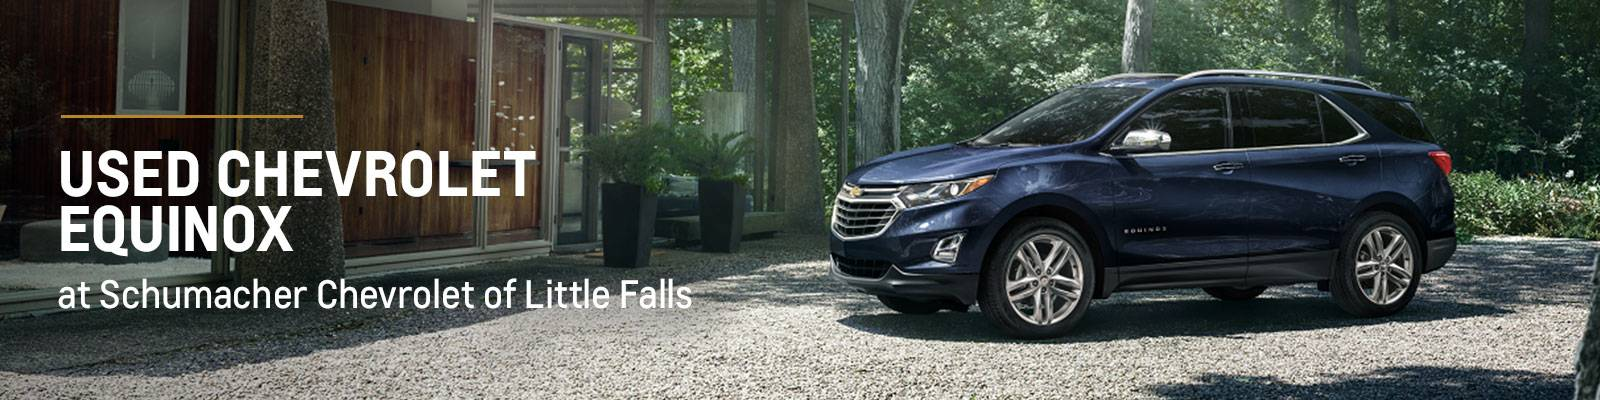 Used Chevrolet Equinox For Sale in Little Falls NJ